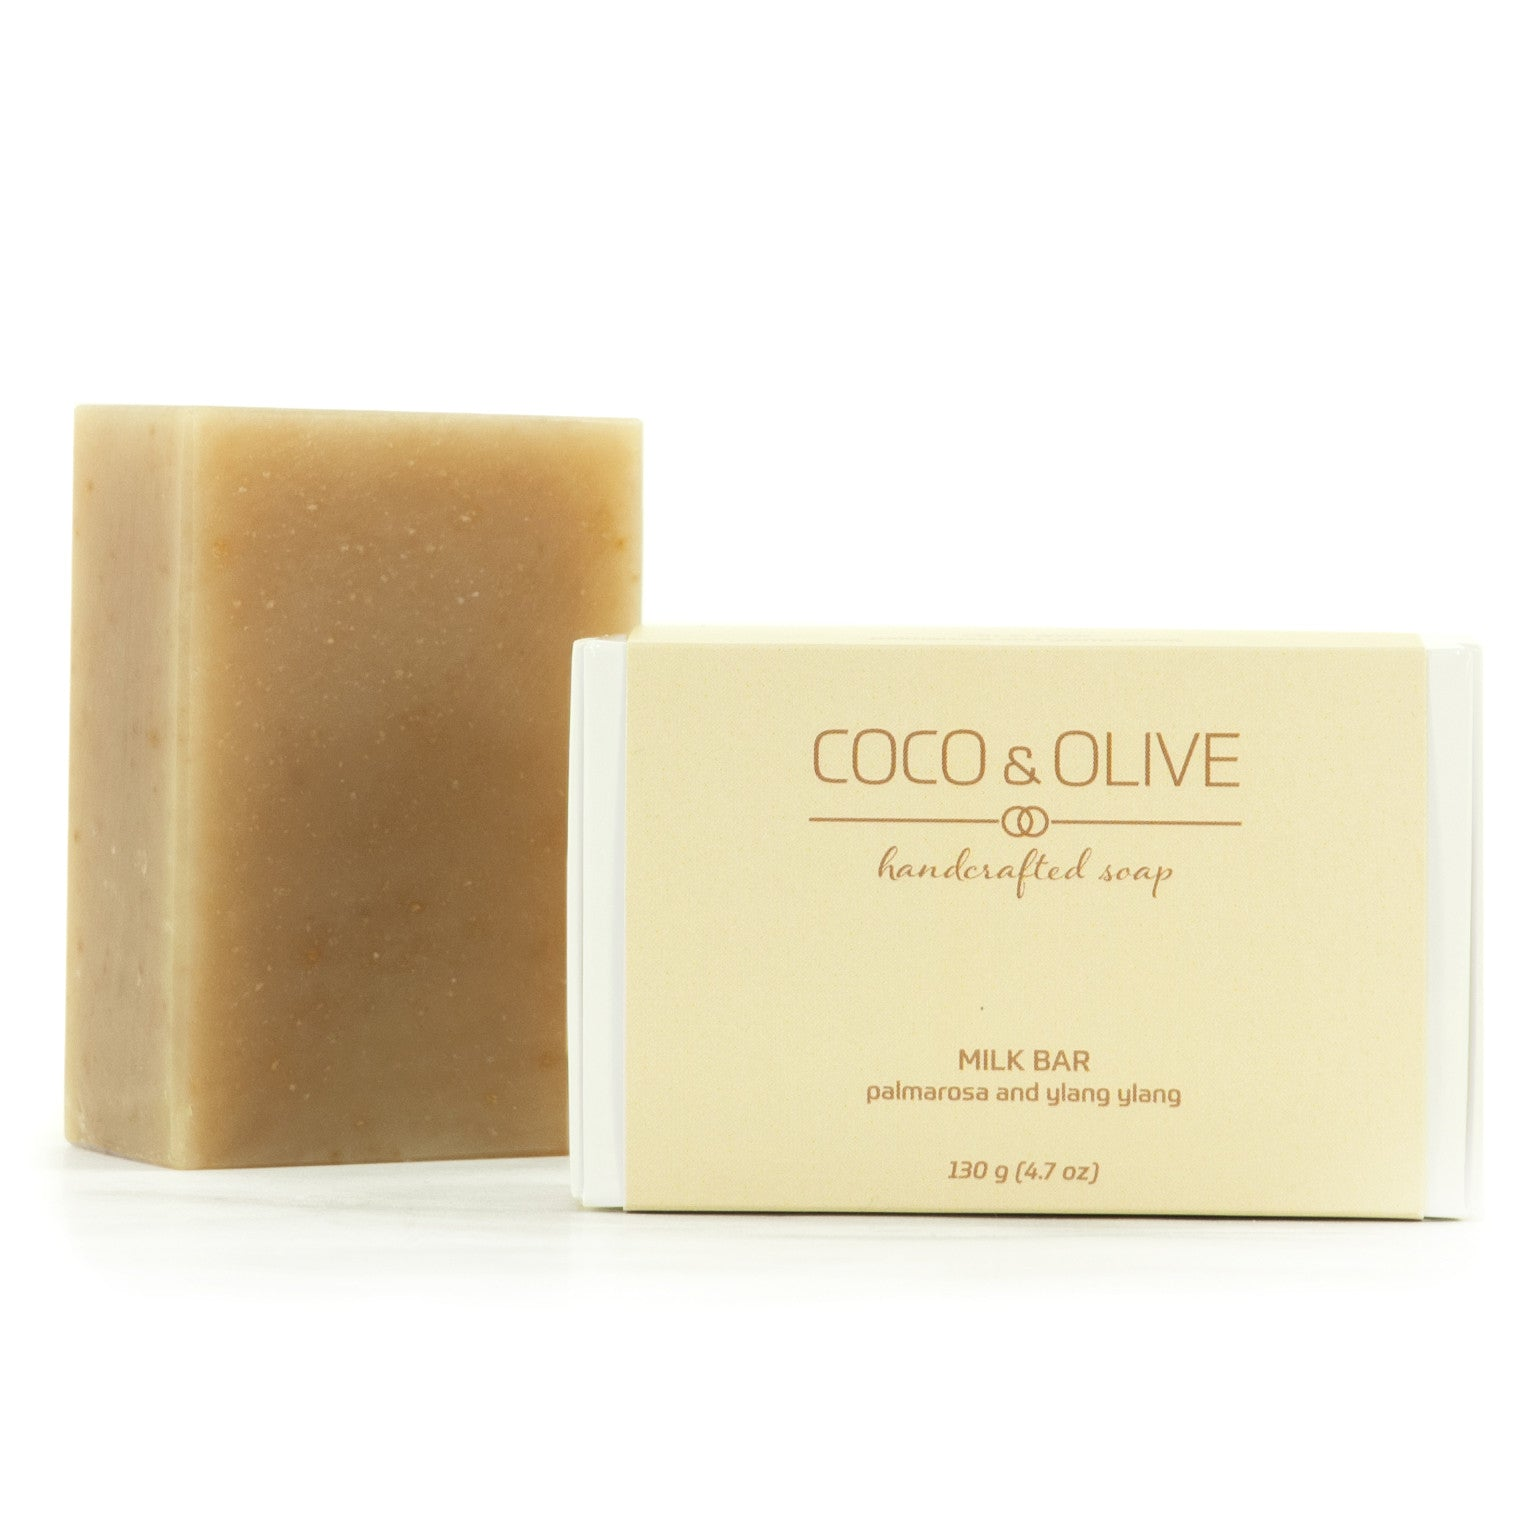 Coco & Olive Milk Bar handmade luxury soap has natural moisturizers that gently cleanse the most sensitive of skin.